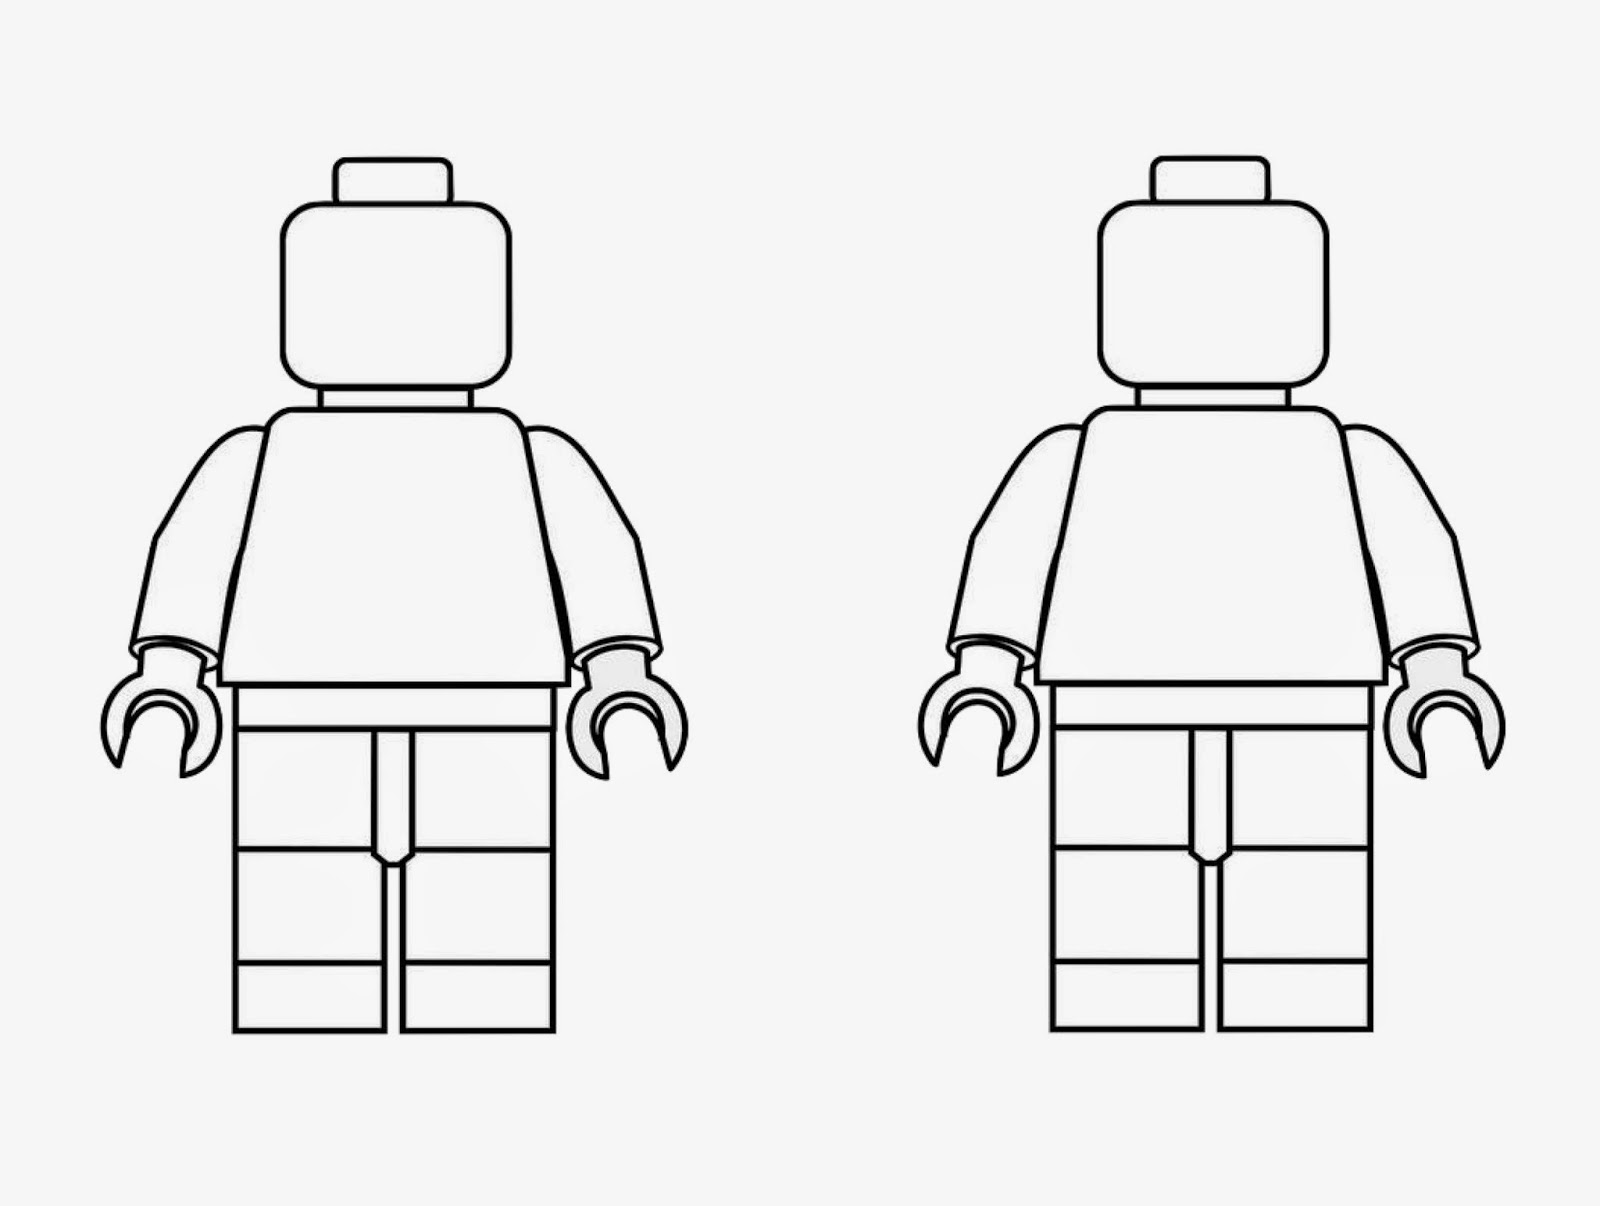 image about Lego Man Printable called Lego guys coloring webpage